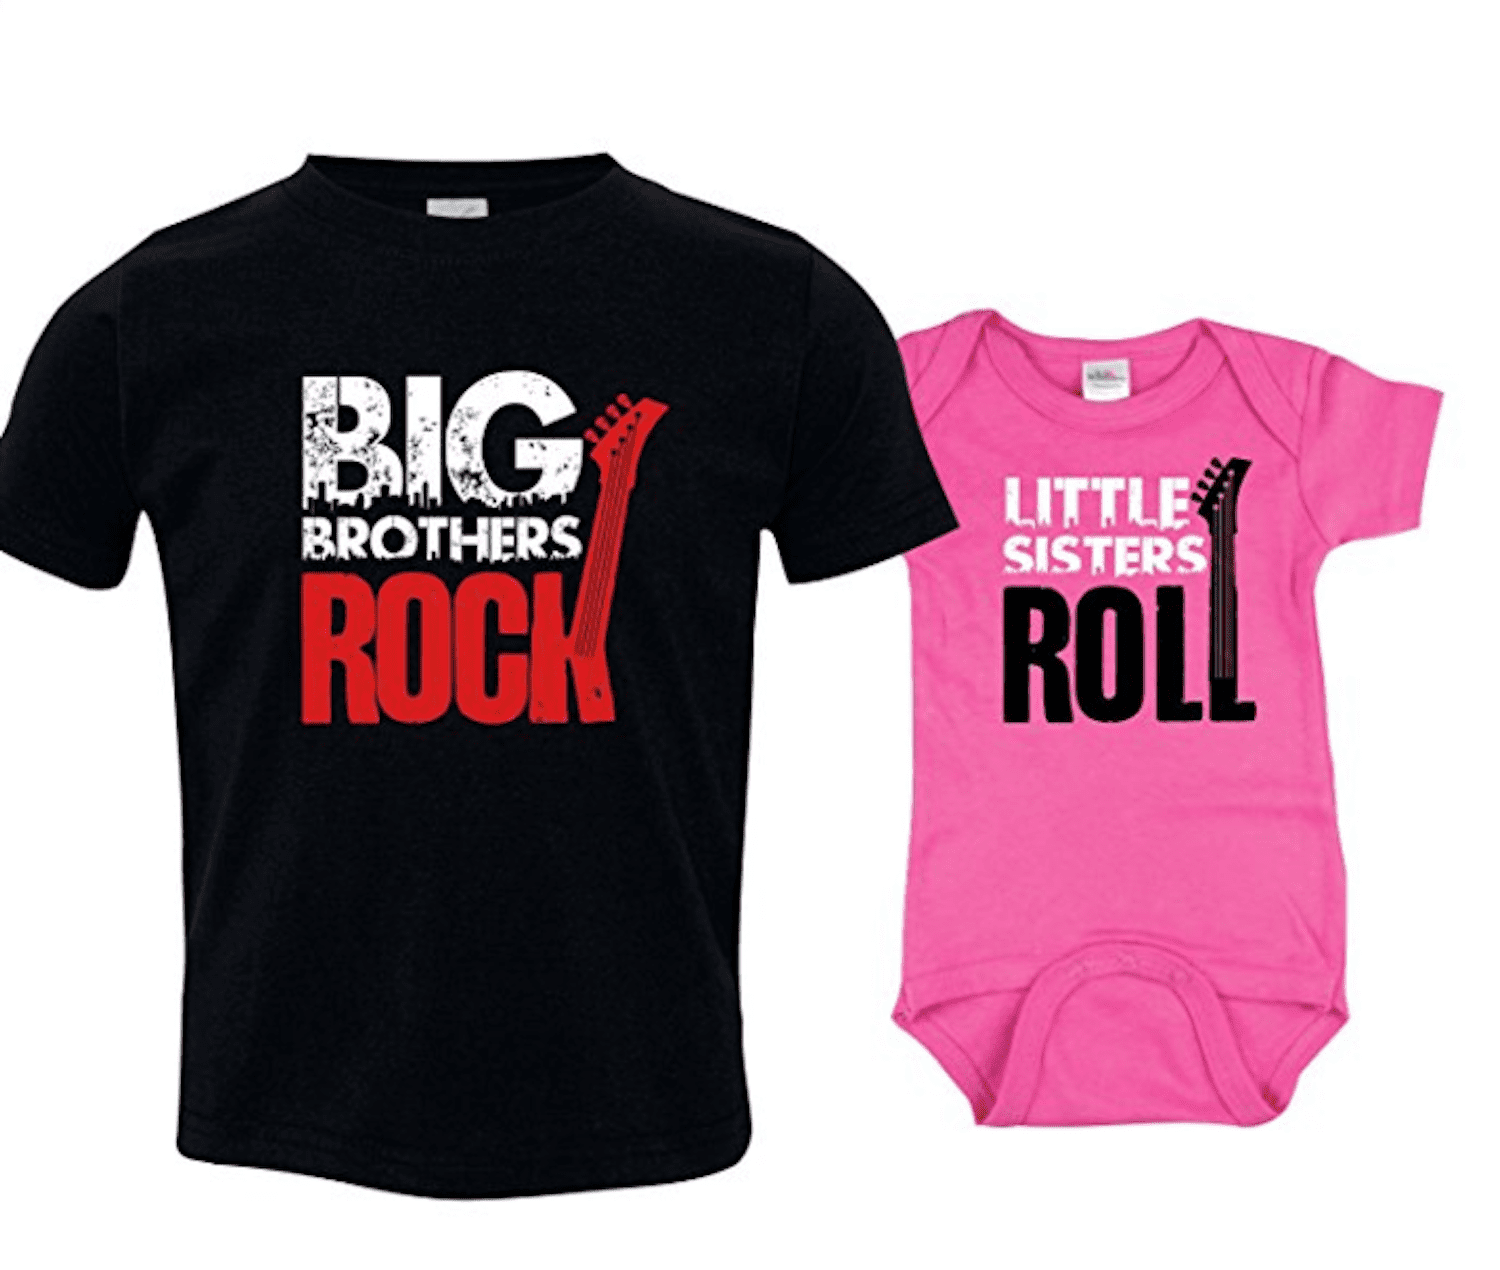 4bc197831795 Big Brothers Rock Sibling Shirts Set for Sisters and Brothers by Nursery  Decals and More. amazon.com